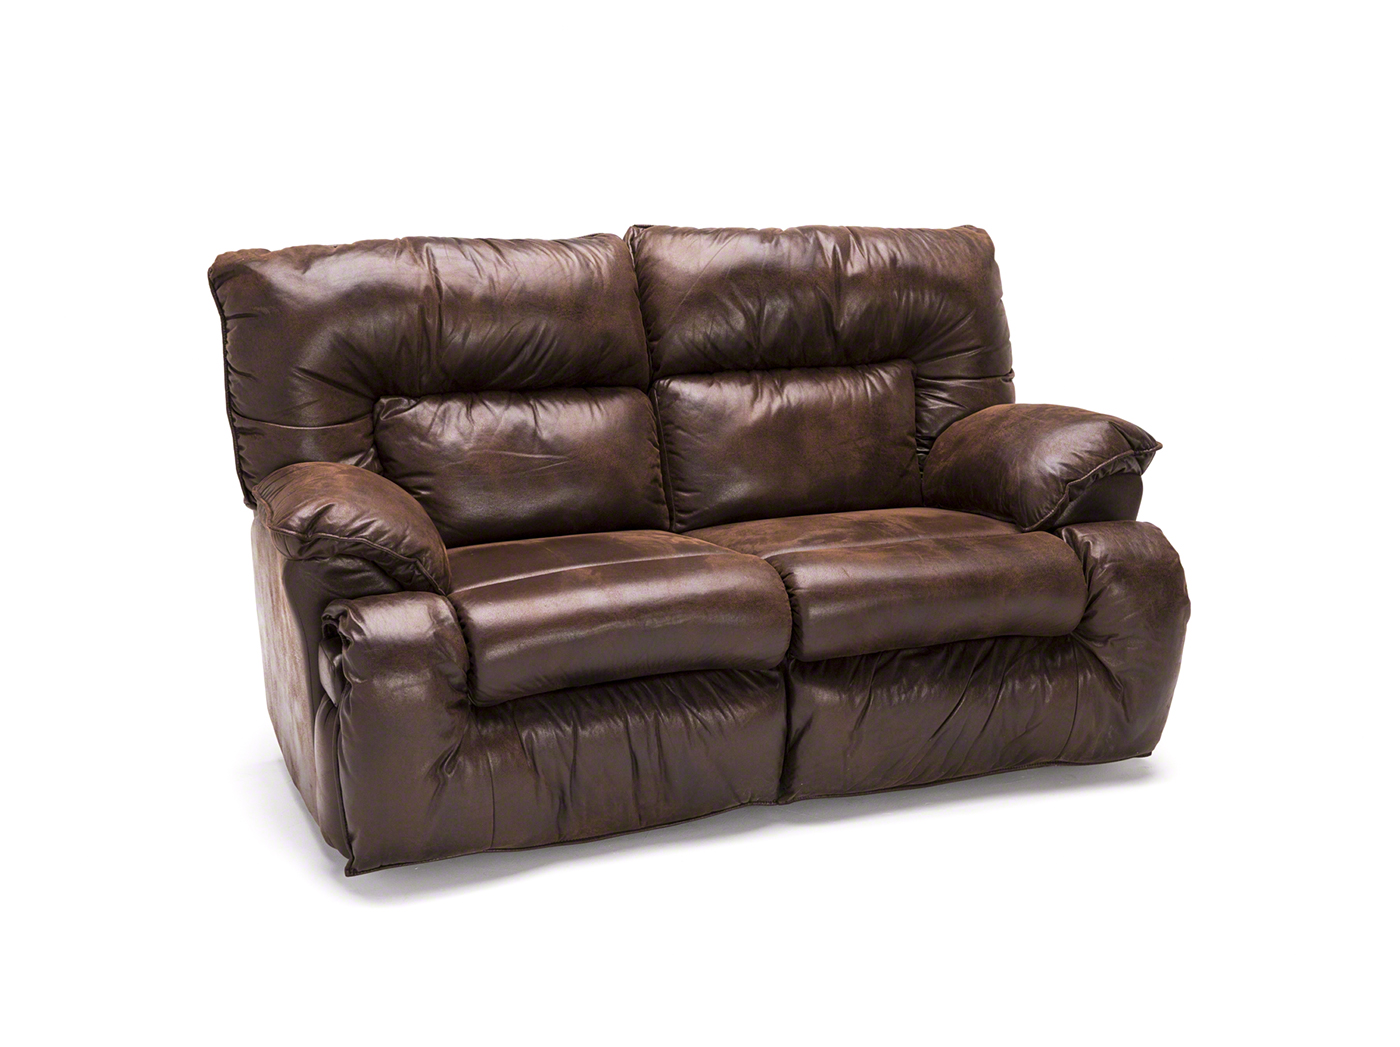 Dual Rocking Reclining Loveseat Southern Motion New Harbor Pc U Dual Reclining Sofa W Pillows